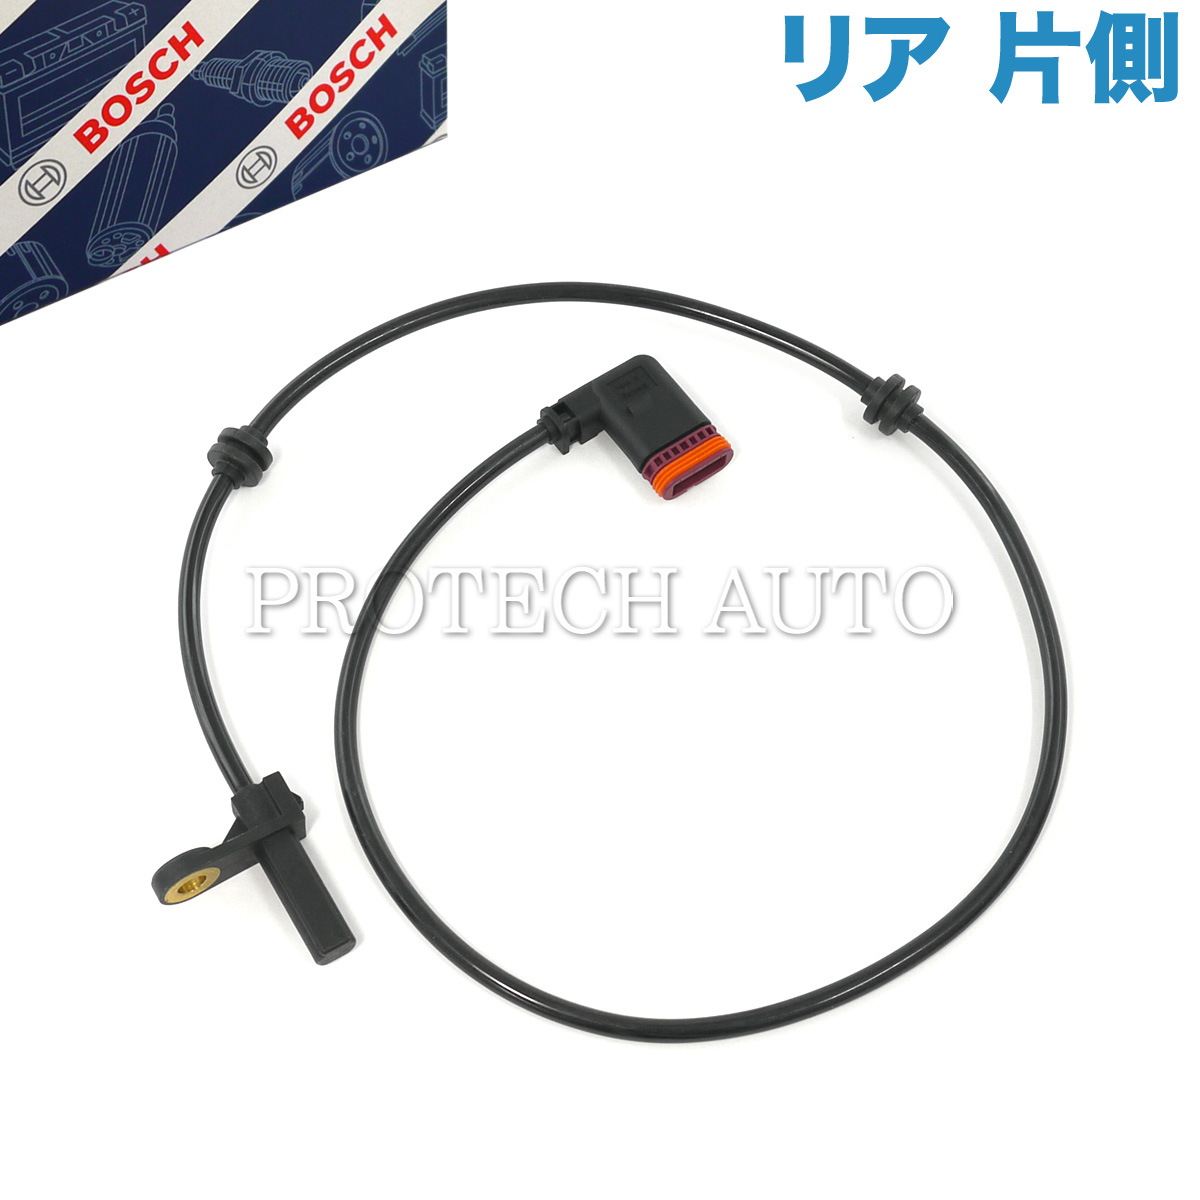 純正OEM BOSCH製 ベンツ W221 W216 S350 S400 S500 S550 S600 S63AMG CL550 CL600 CL63AMG リア/リヤ ABSセンサー/スピードセンサー 左右共通 片側 2219057300 2219056000 2215400117【あす楽対応】